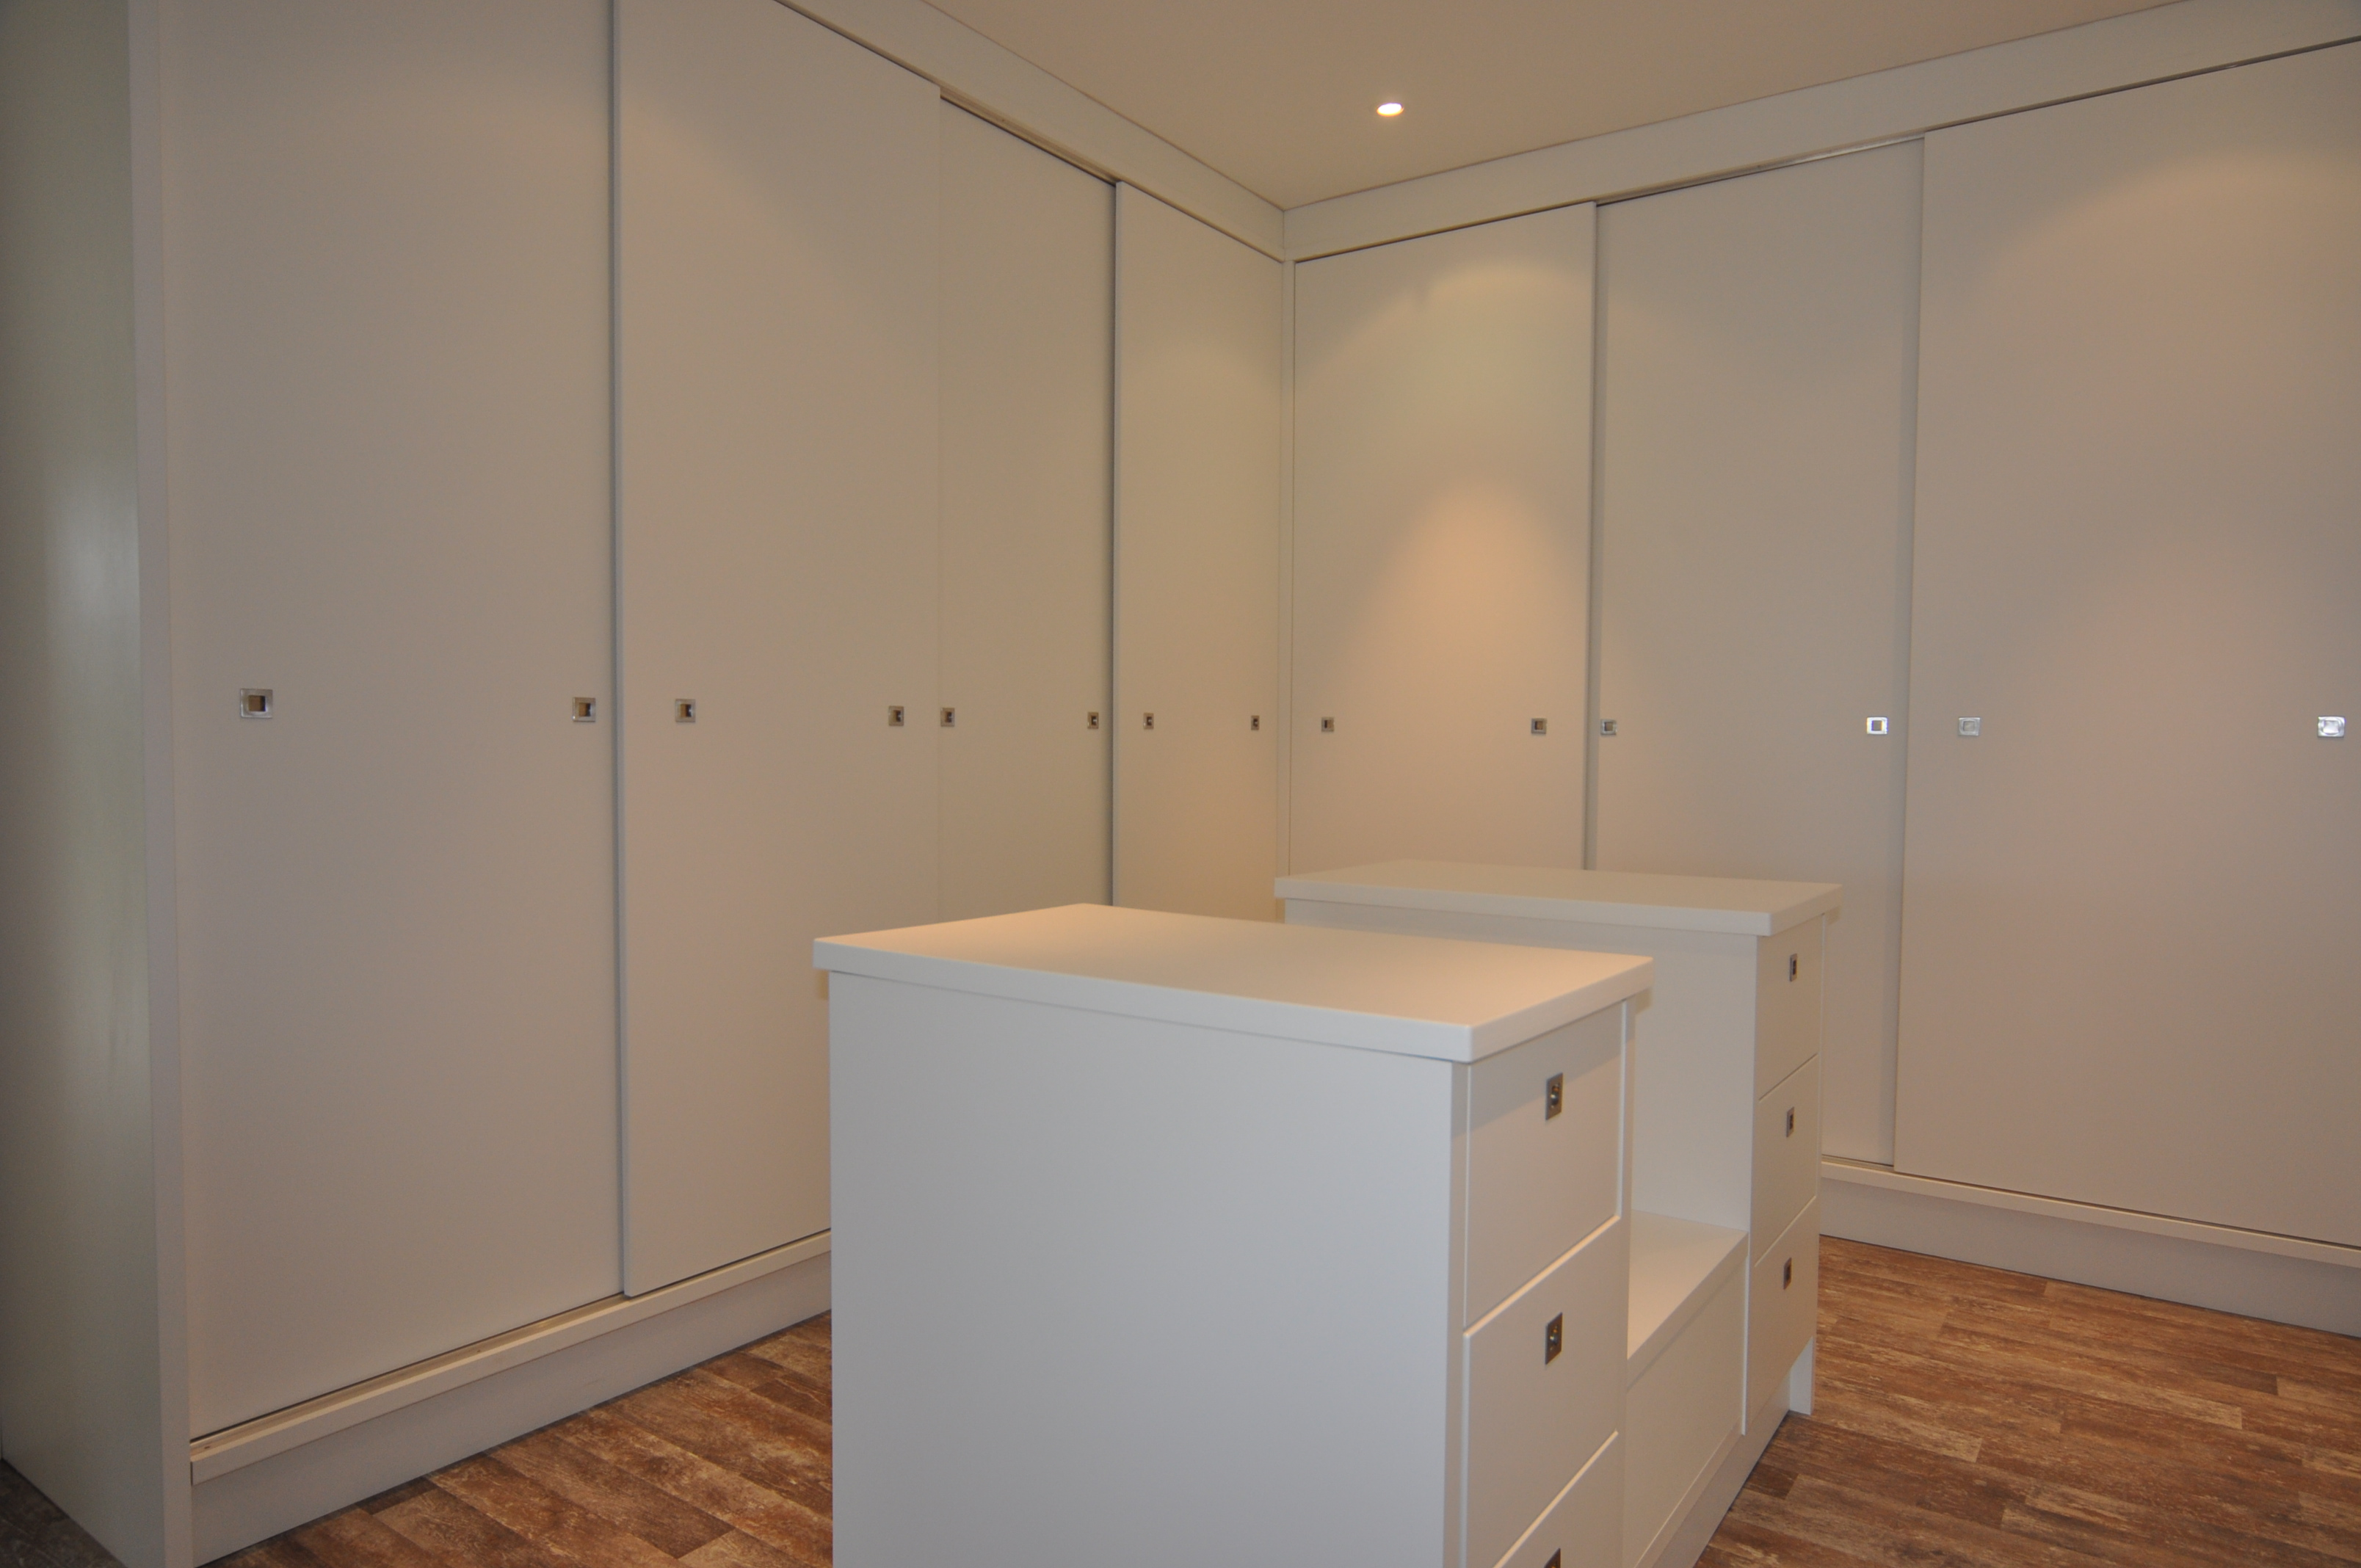 Built in cupboards and units green desert design for Built in cupboards designs